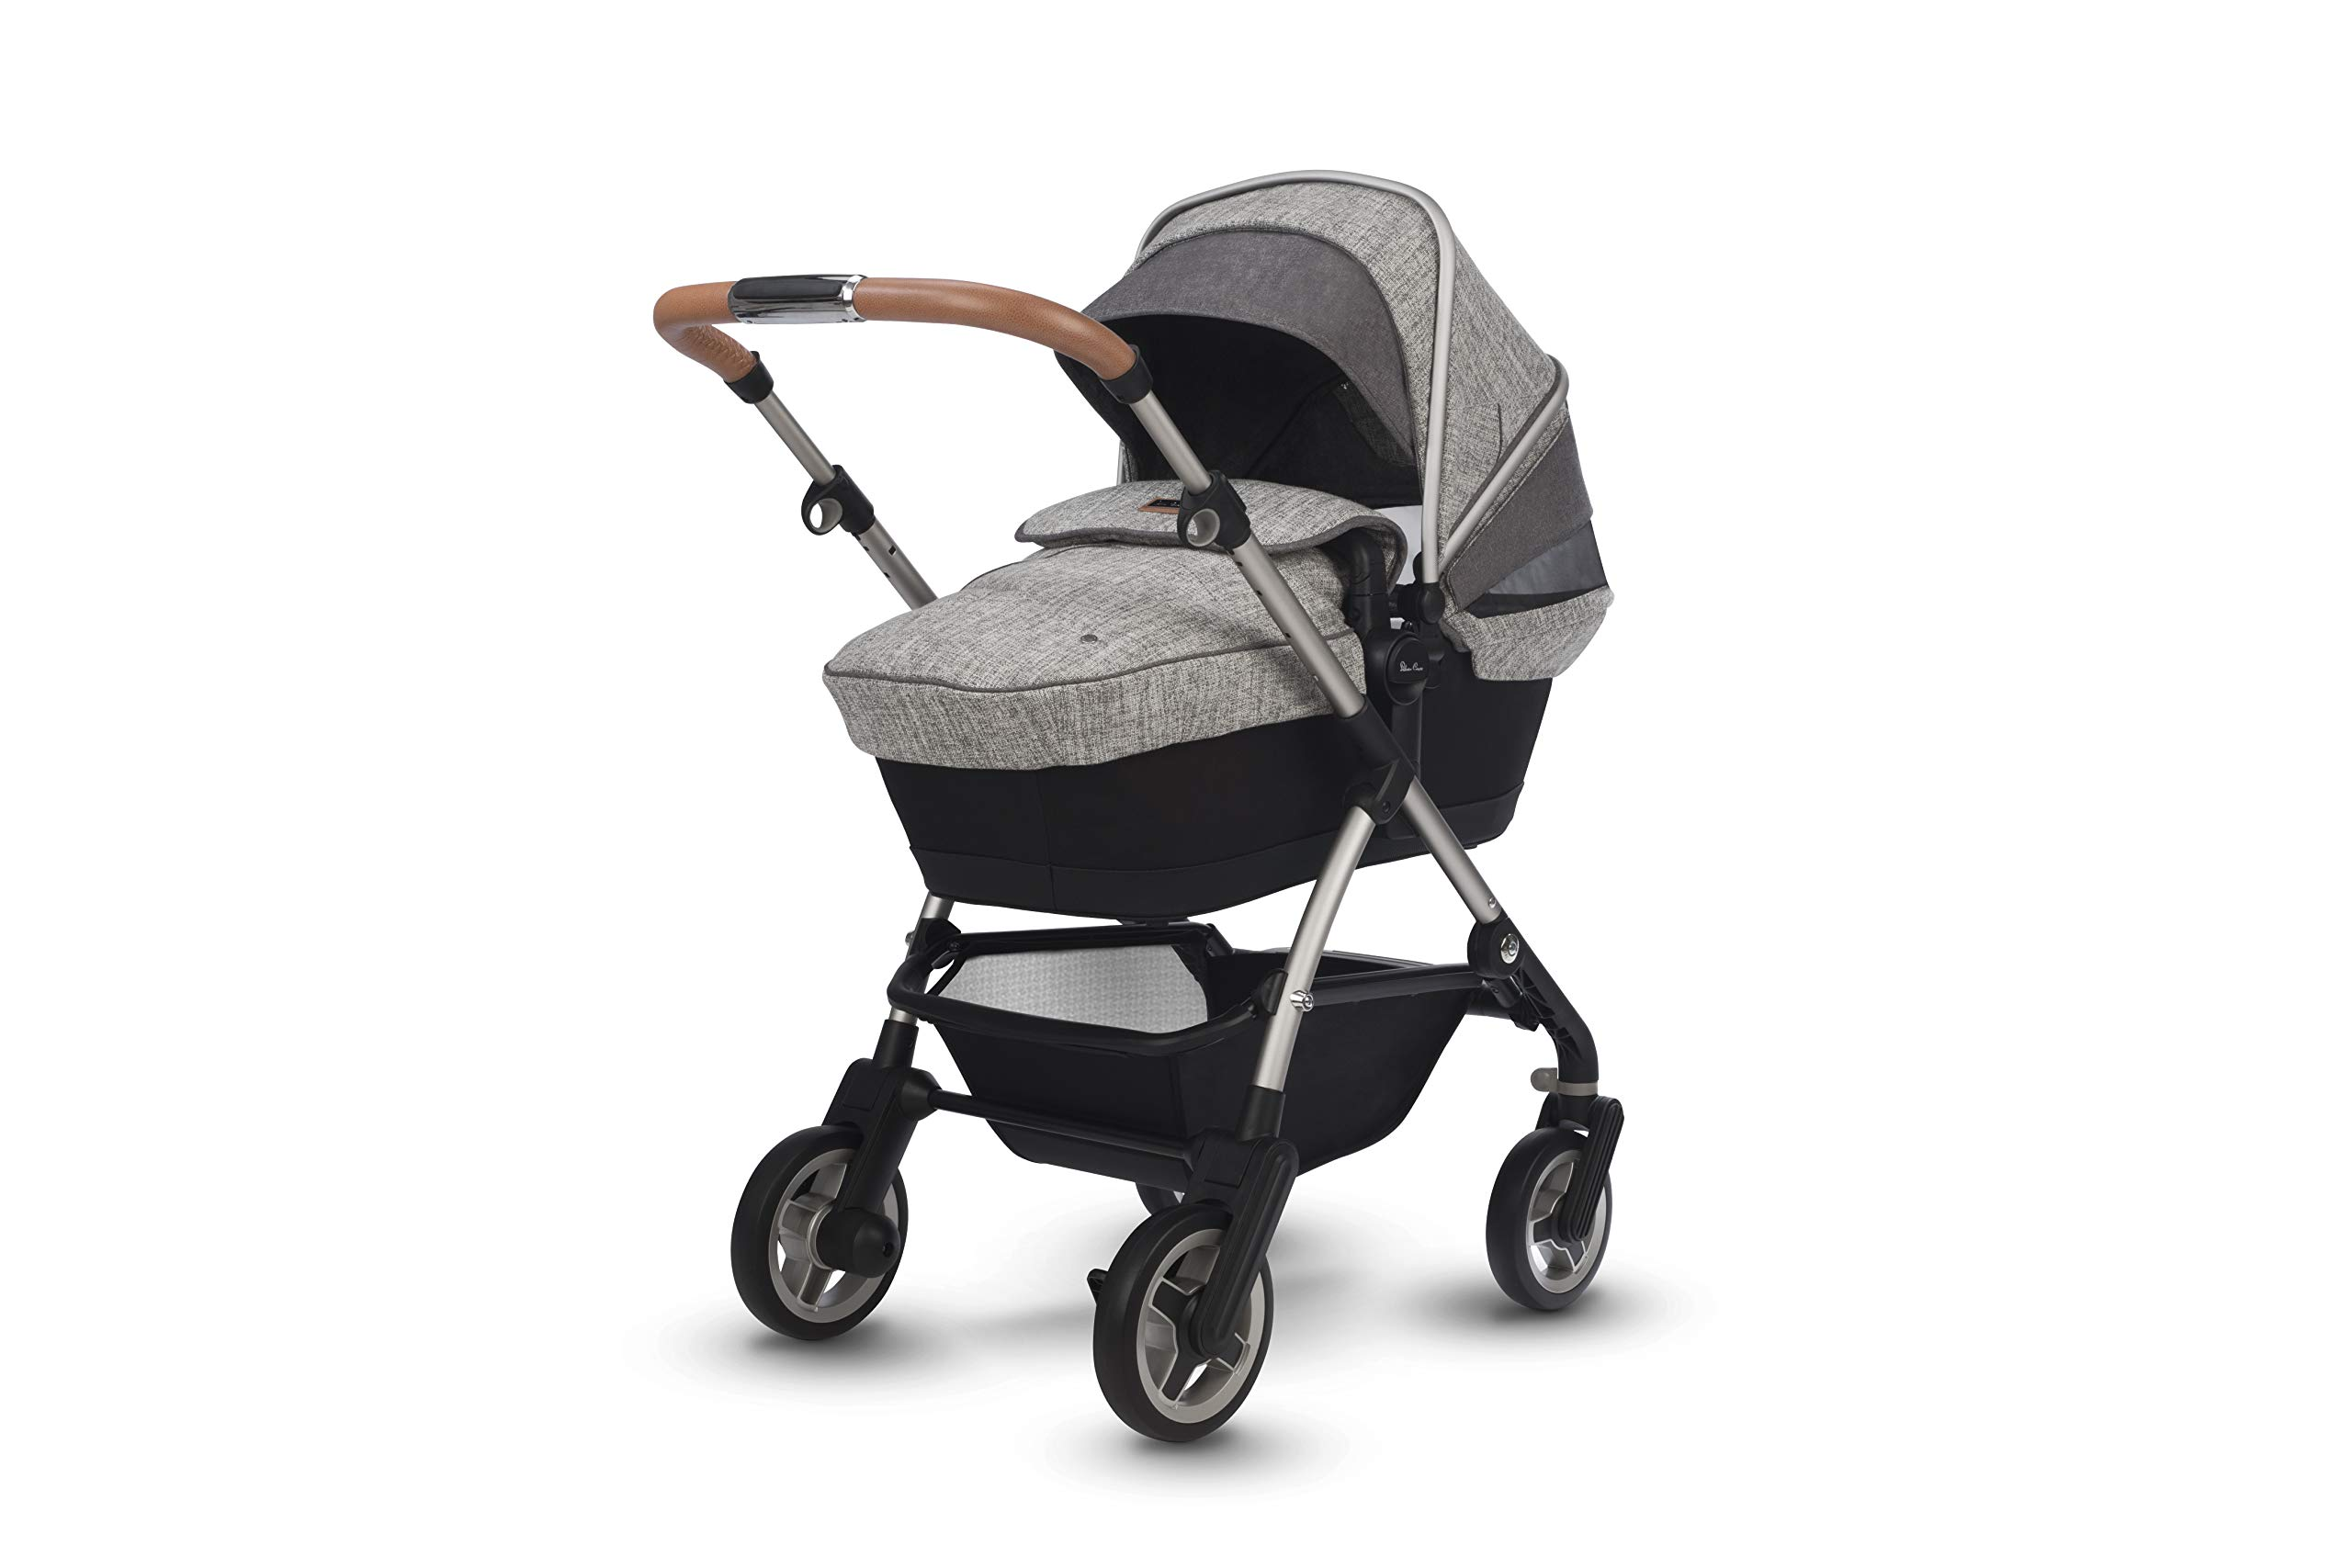 Silver Cross Wayfarer Camden Silver Cross Complete pram system that includes everything you need from birth to toddler Includes a lie-flat carrycot for your new born that is suitable for overnight sleeping Compact, lightweight and convenient, hardwearing and durable 5